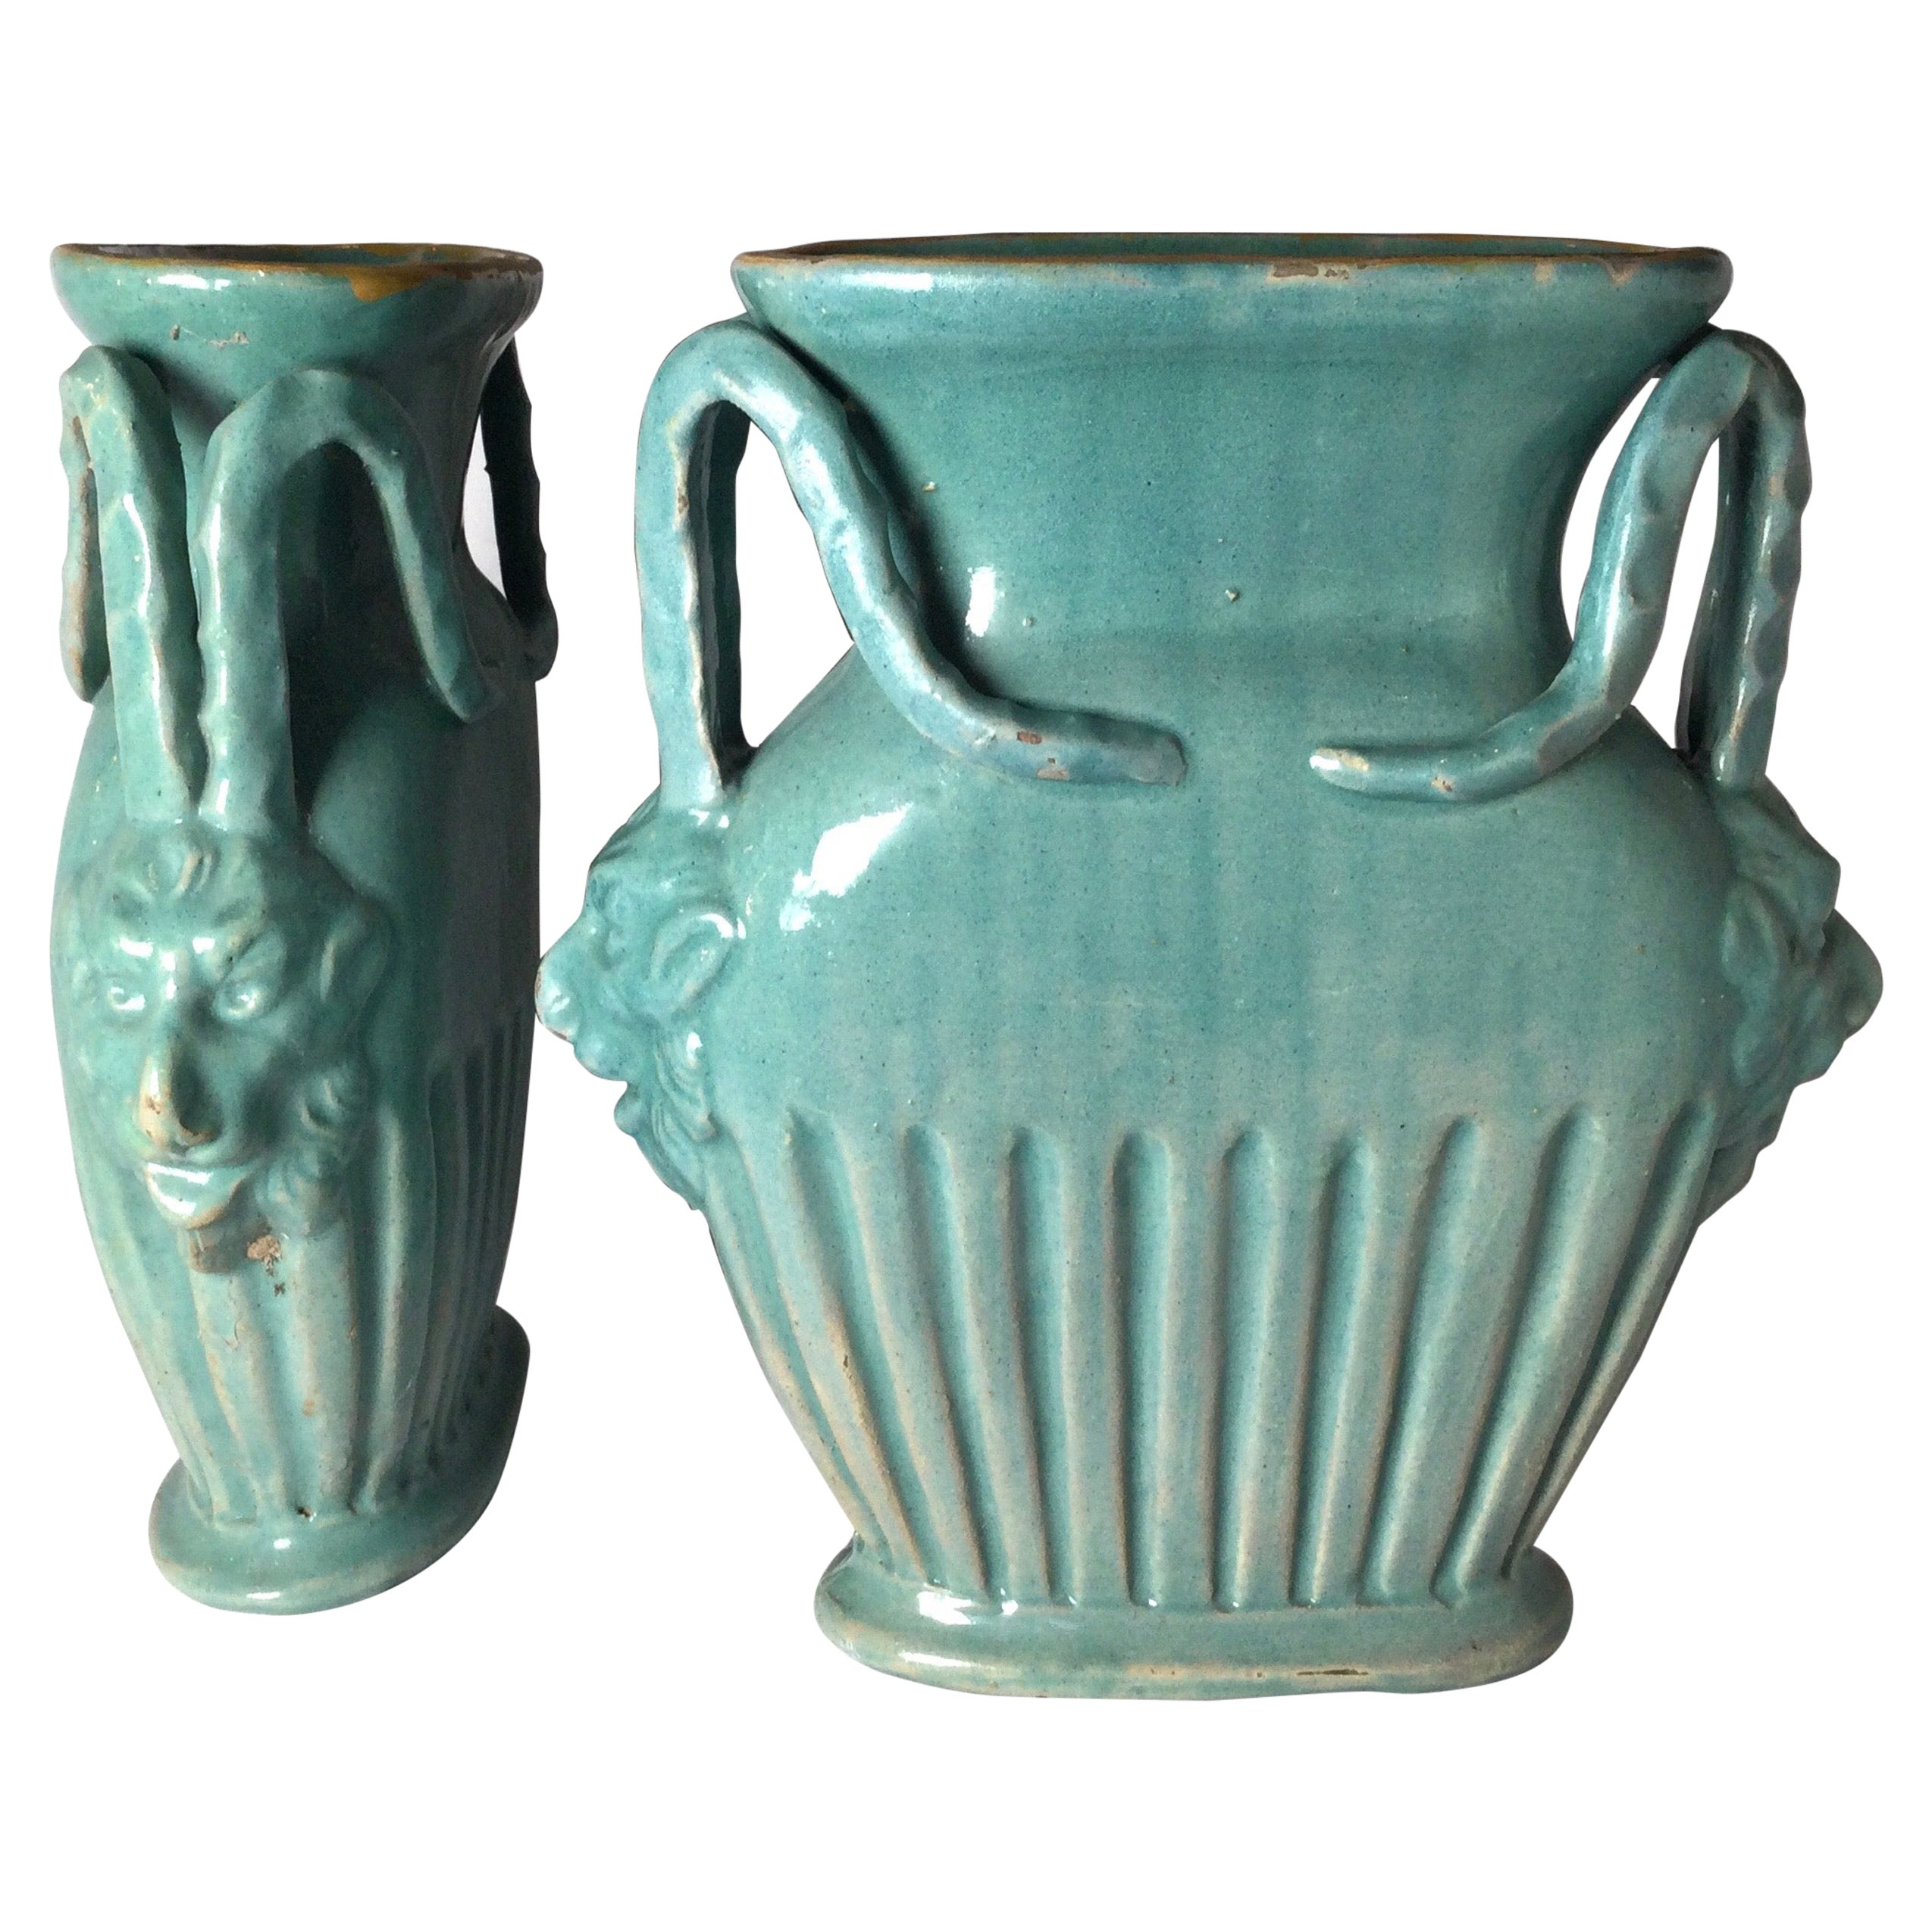 Pair of Italian Turquoise Pottery Vases with Mythical Handles